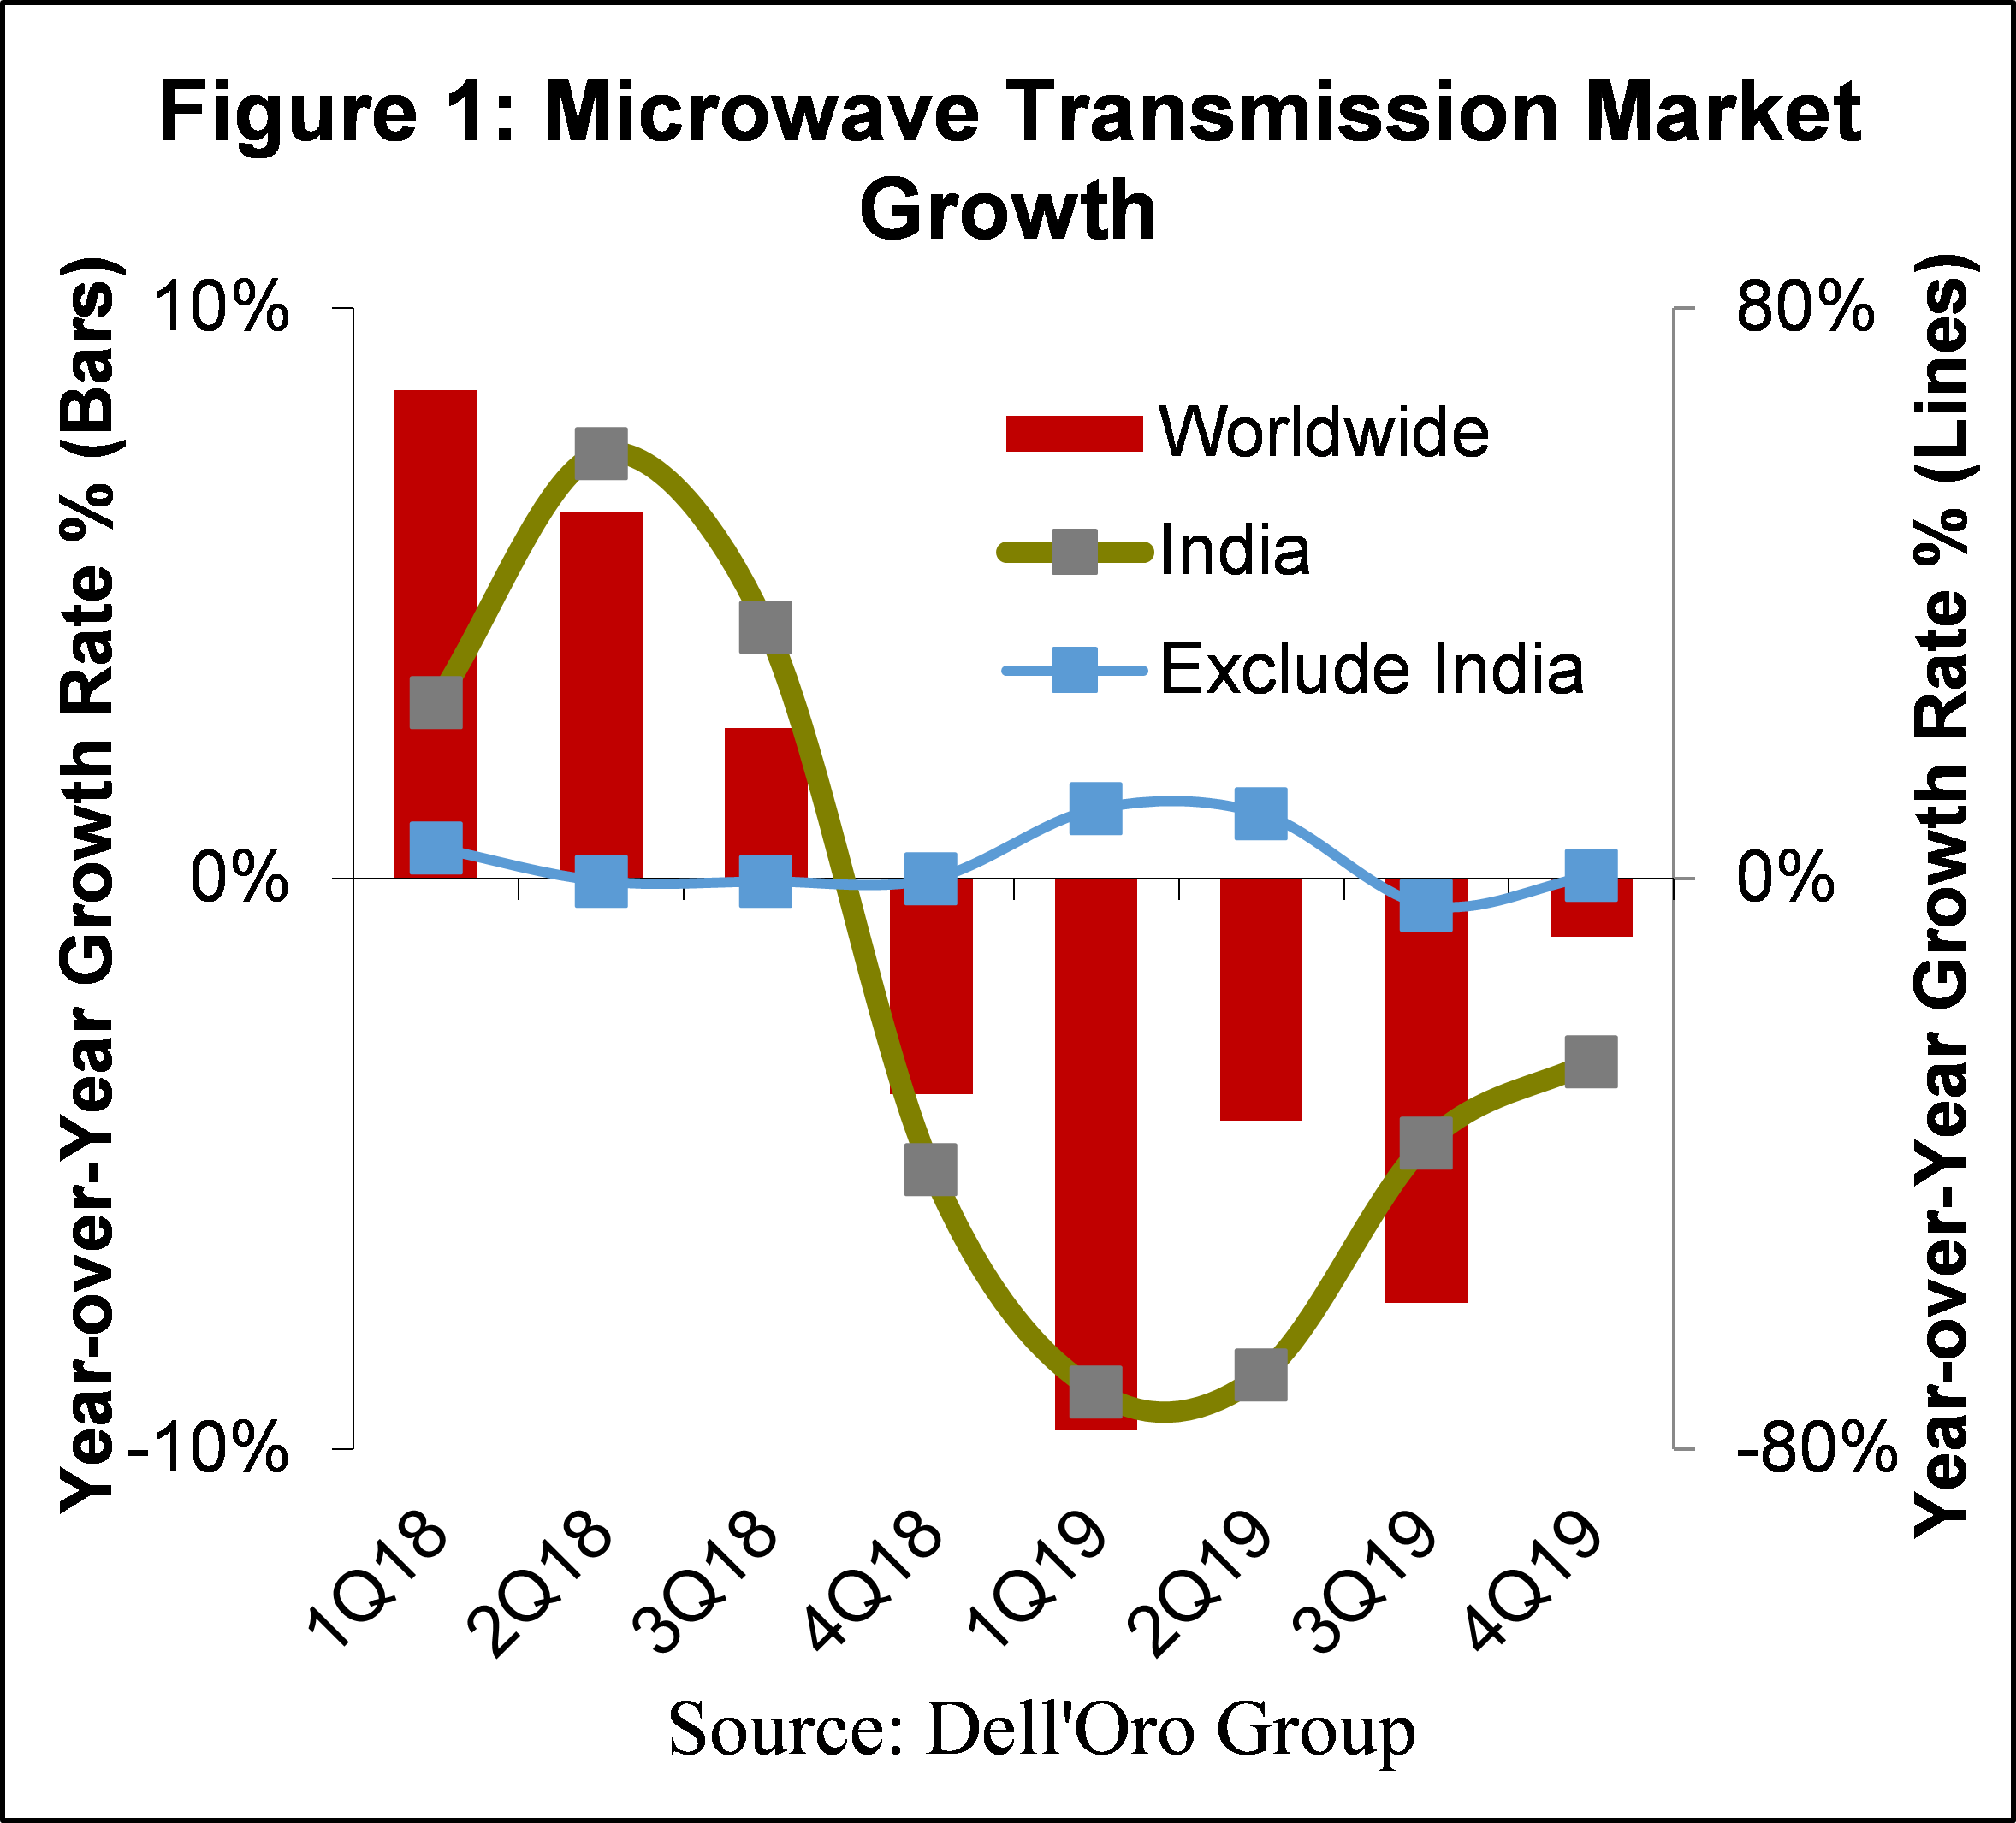 Microwave Transmission Market Growth